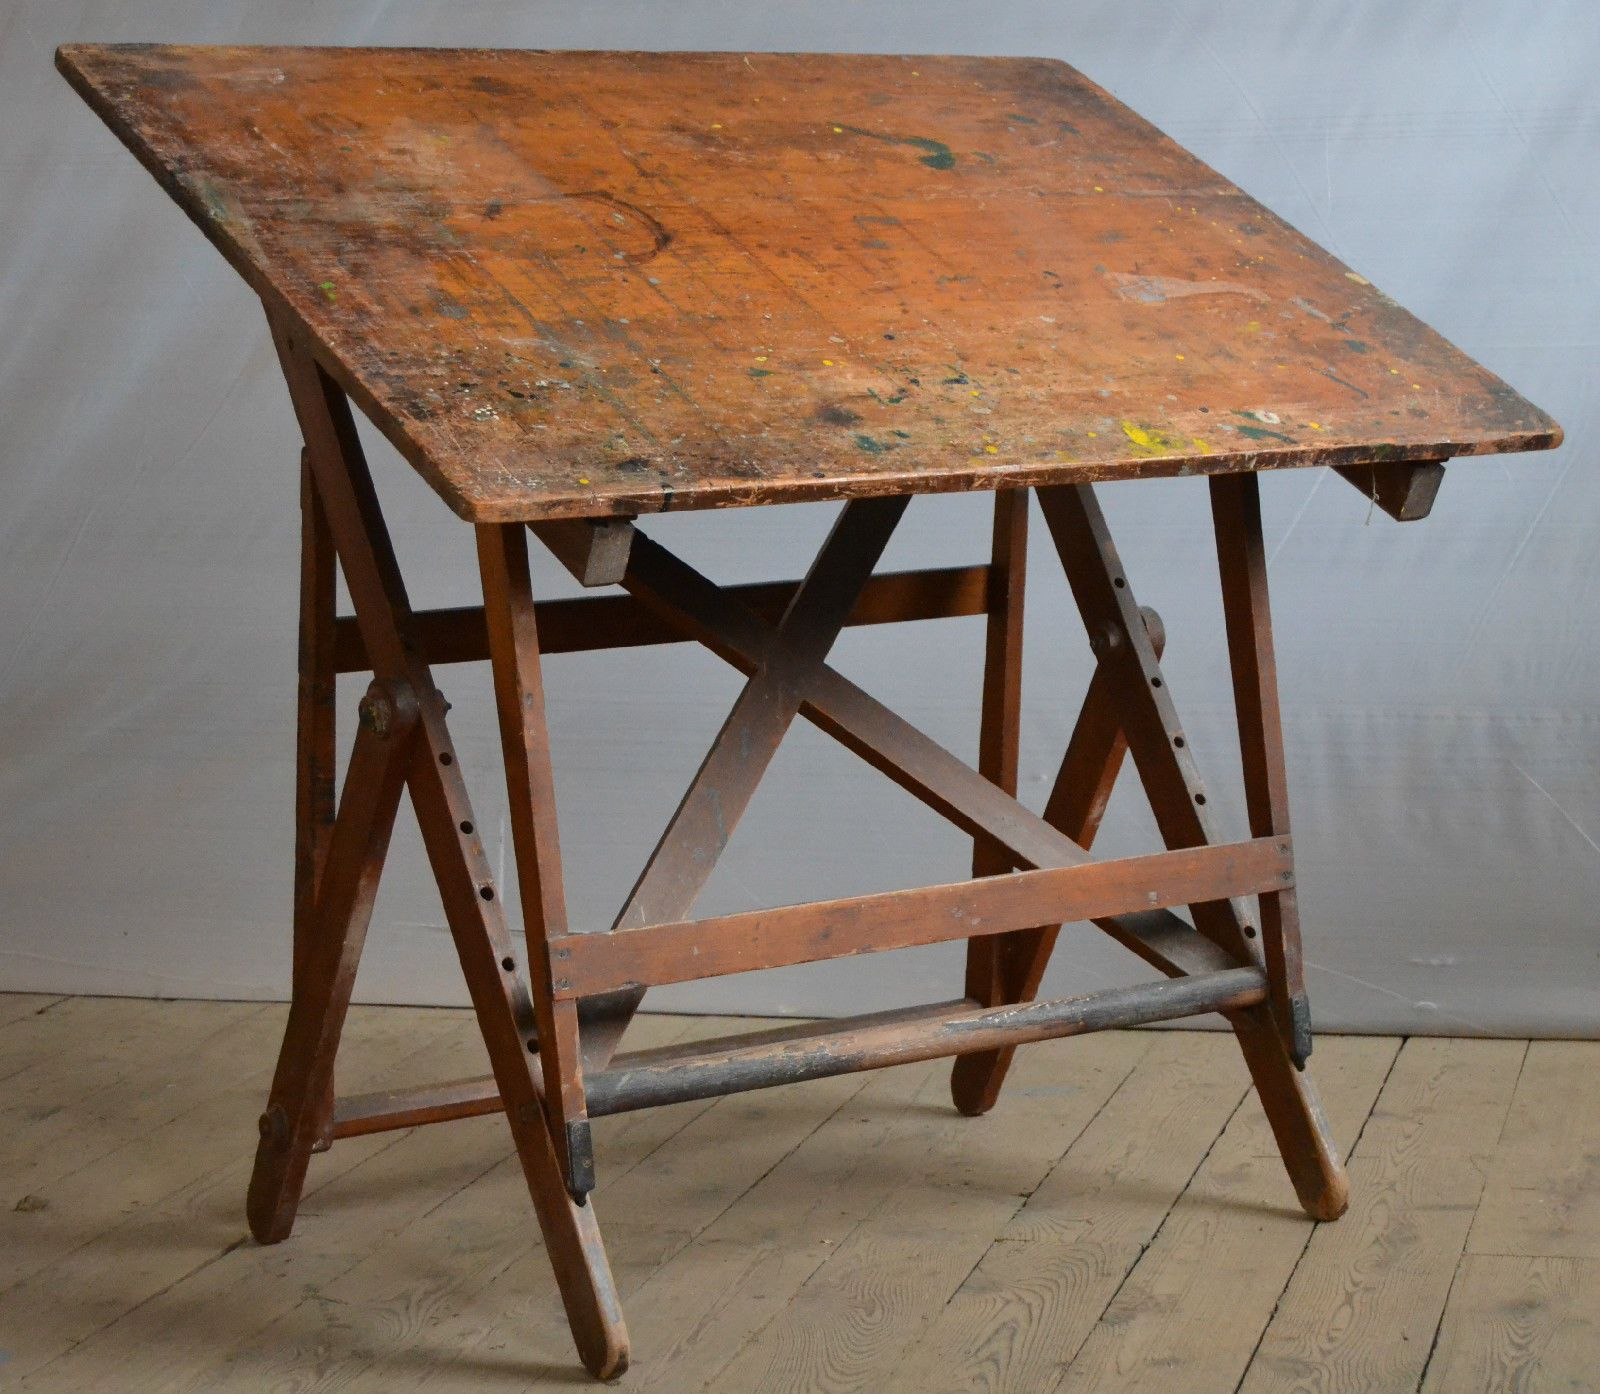 Keuffel Esser Drafting Table Antique Vintage Factory Industrial